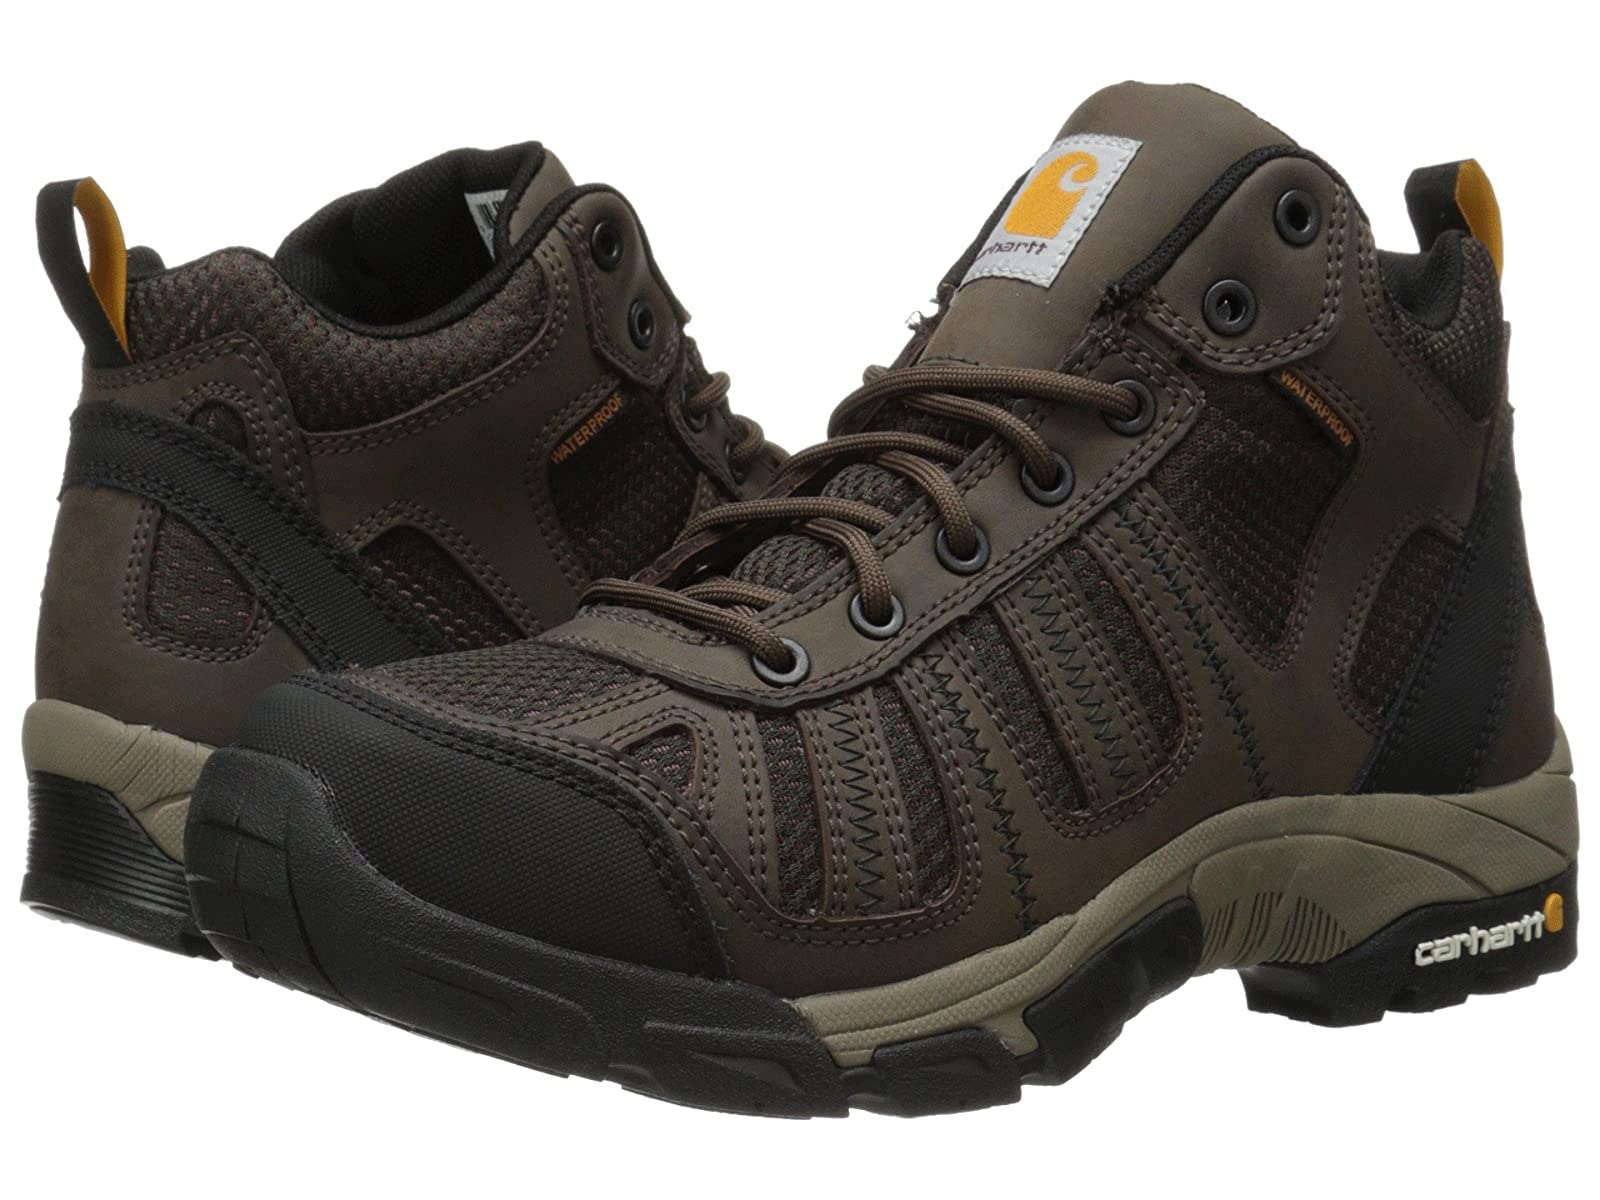 Carhartt Lightweight Waterproof Work HikerSelling fashionable and eye-catching shoes